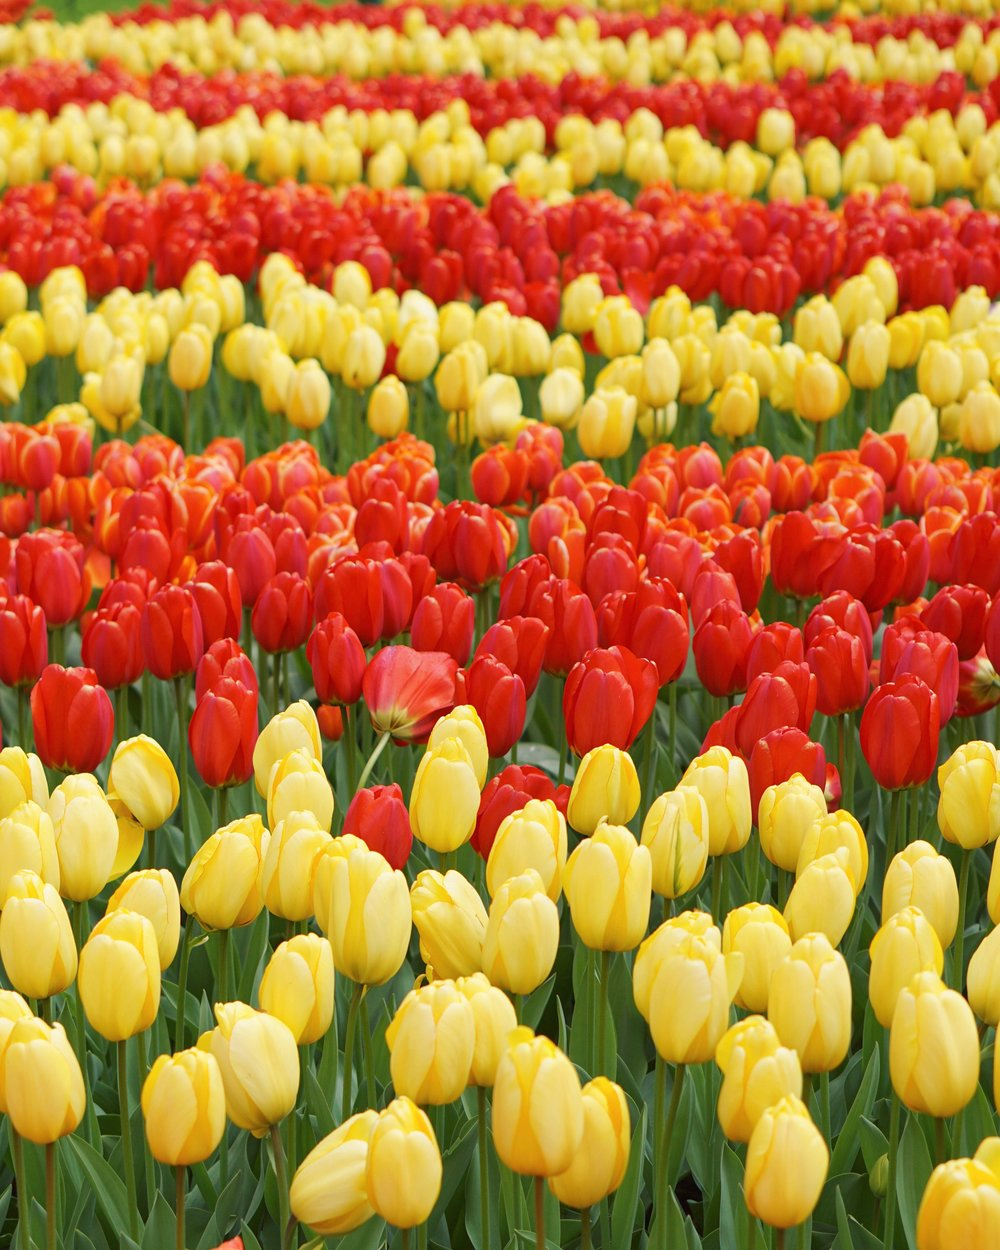 Tulips in Holland 6.jpg